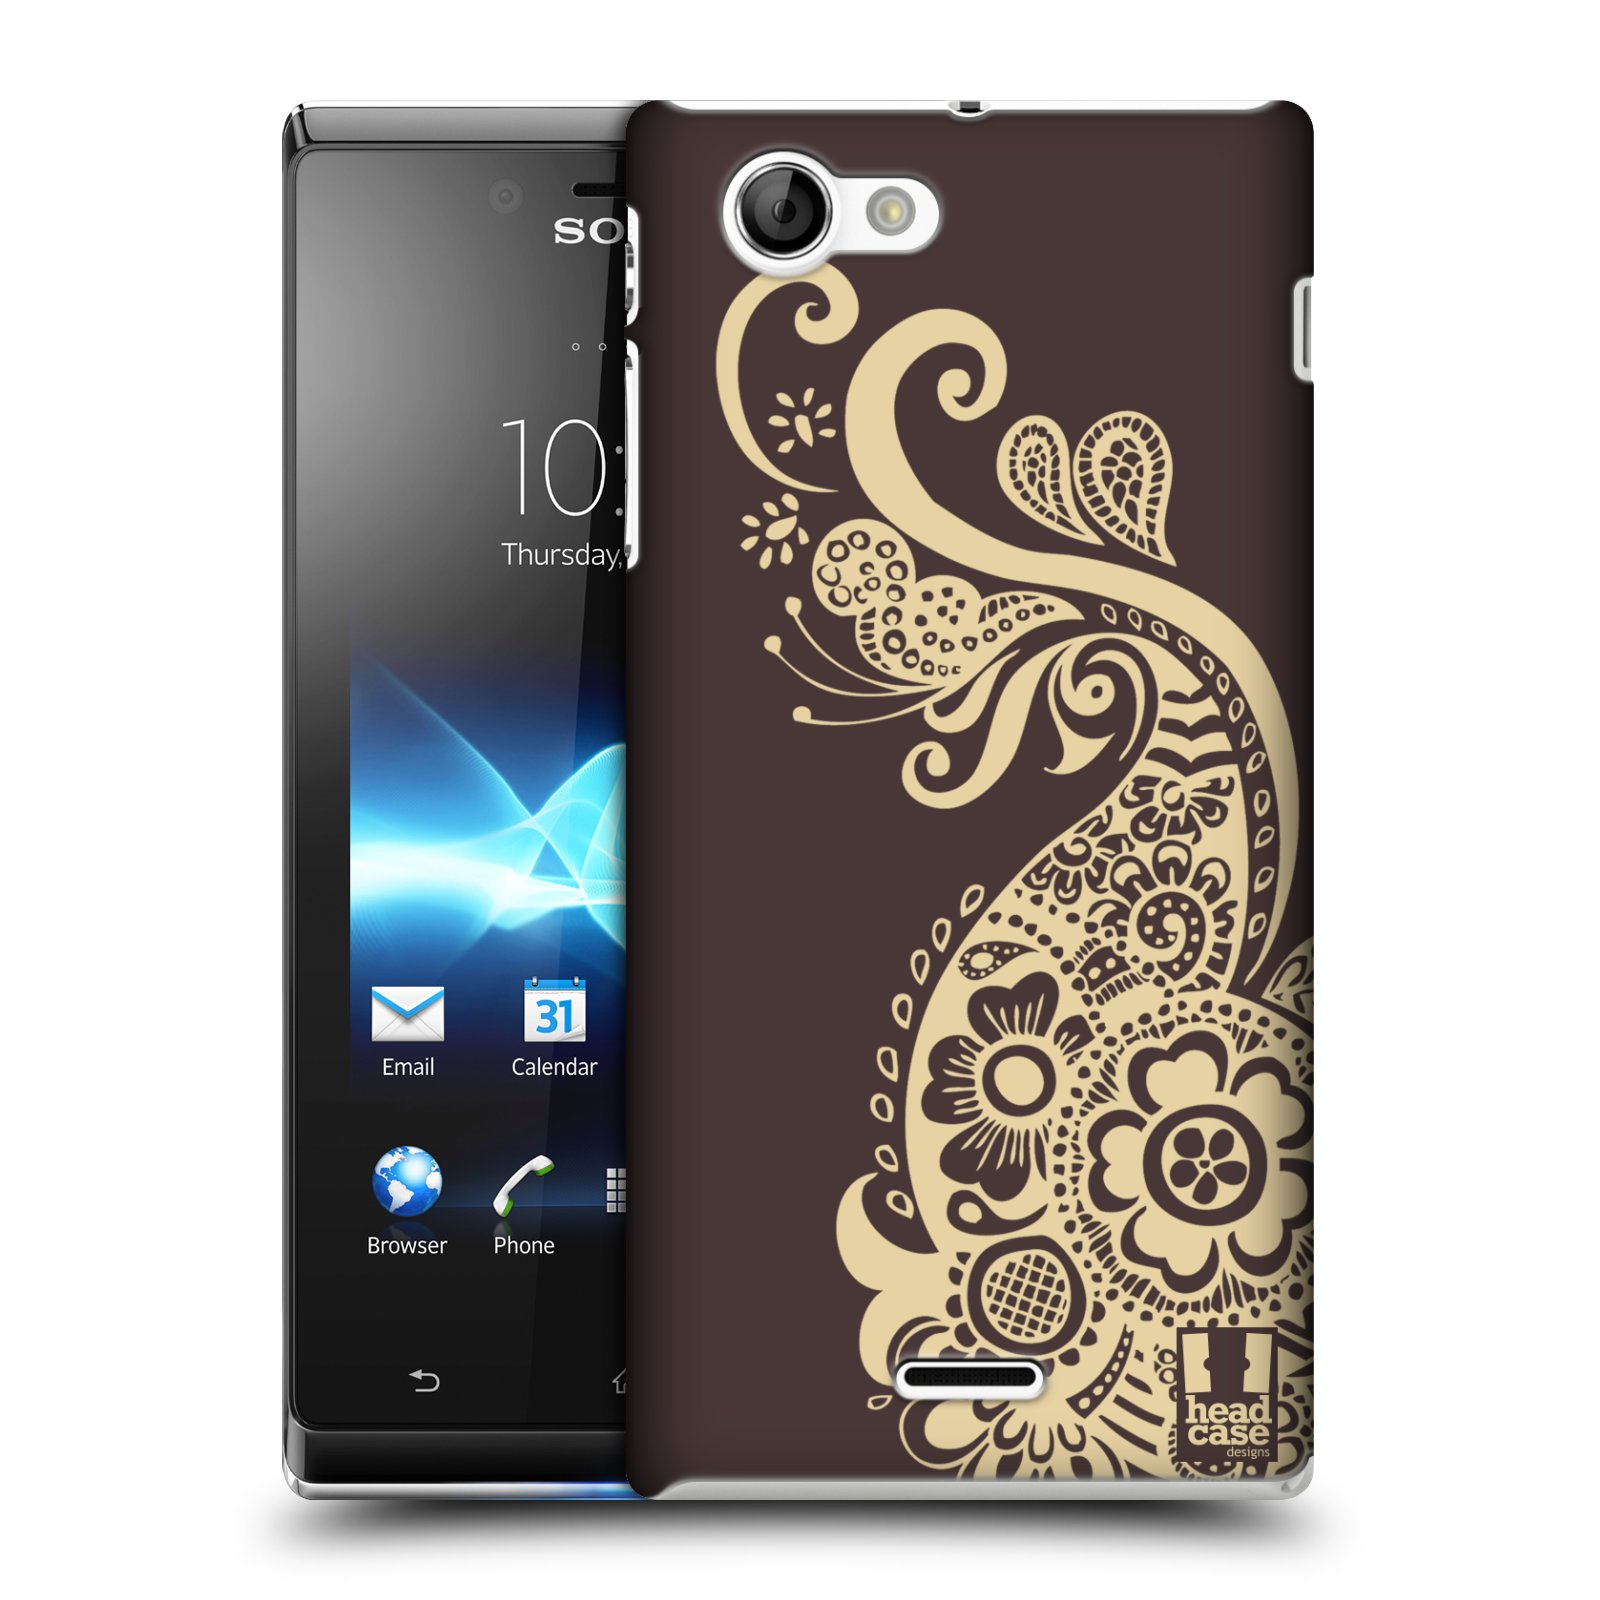 HEAD CASE DESIGNS HENNA CASE COVER FOR SONY XPERIA J ST26i